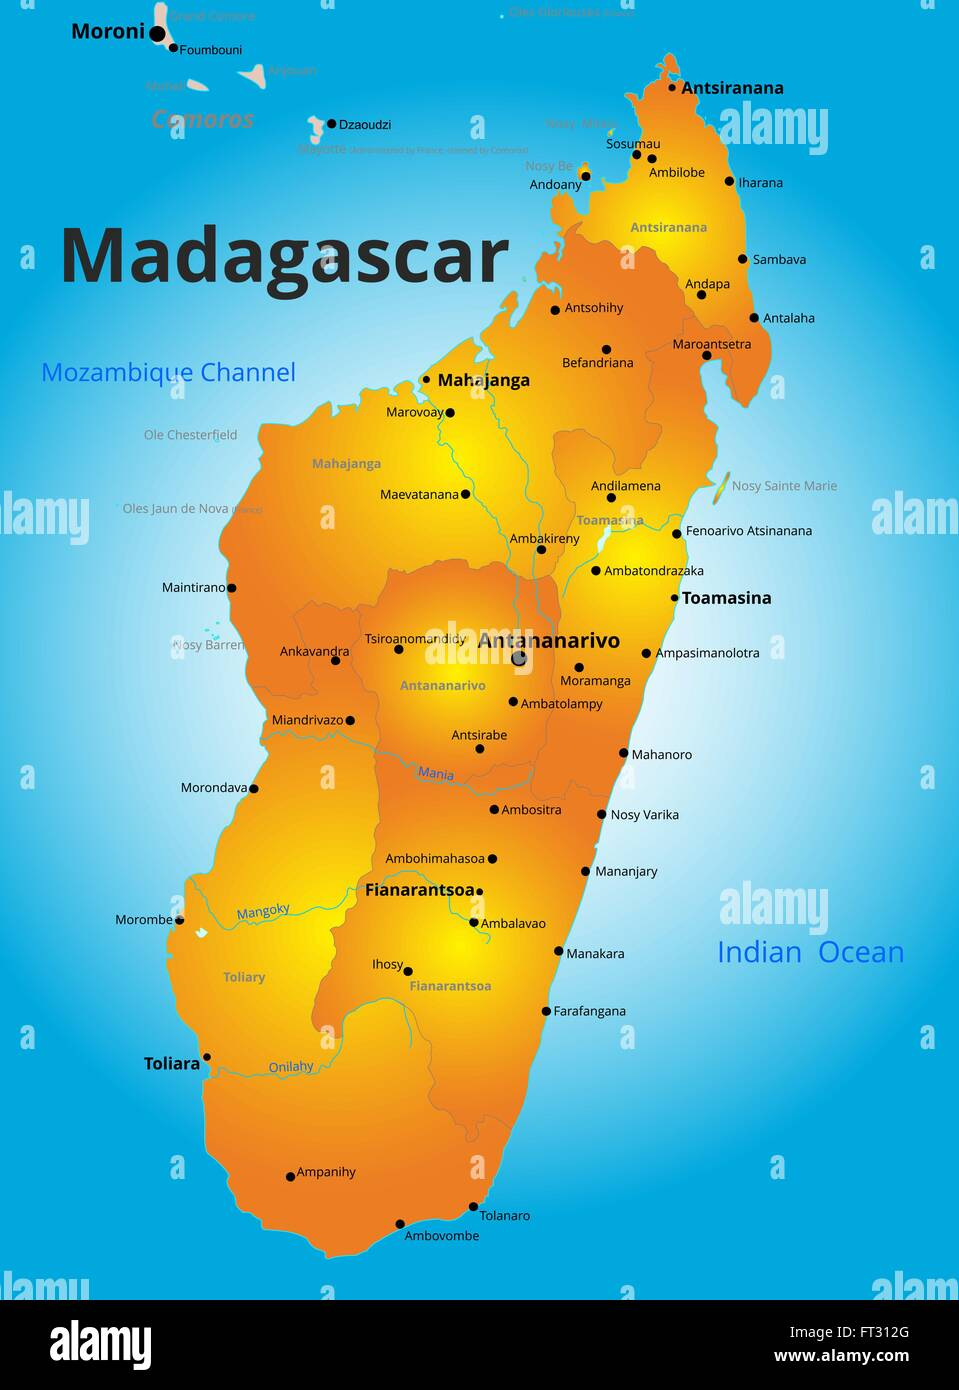 color map of Madagascar country Stock Vector Art & Illustration ...